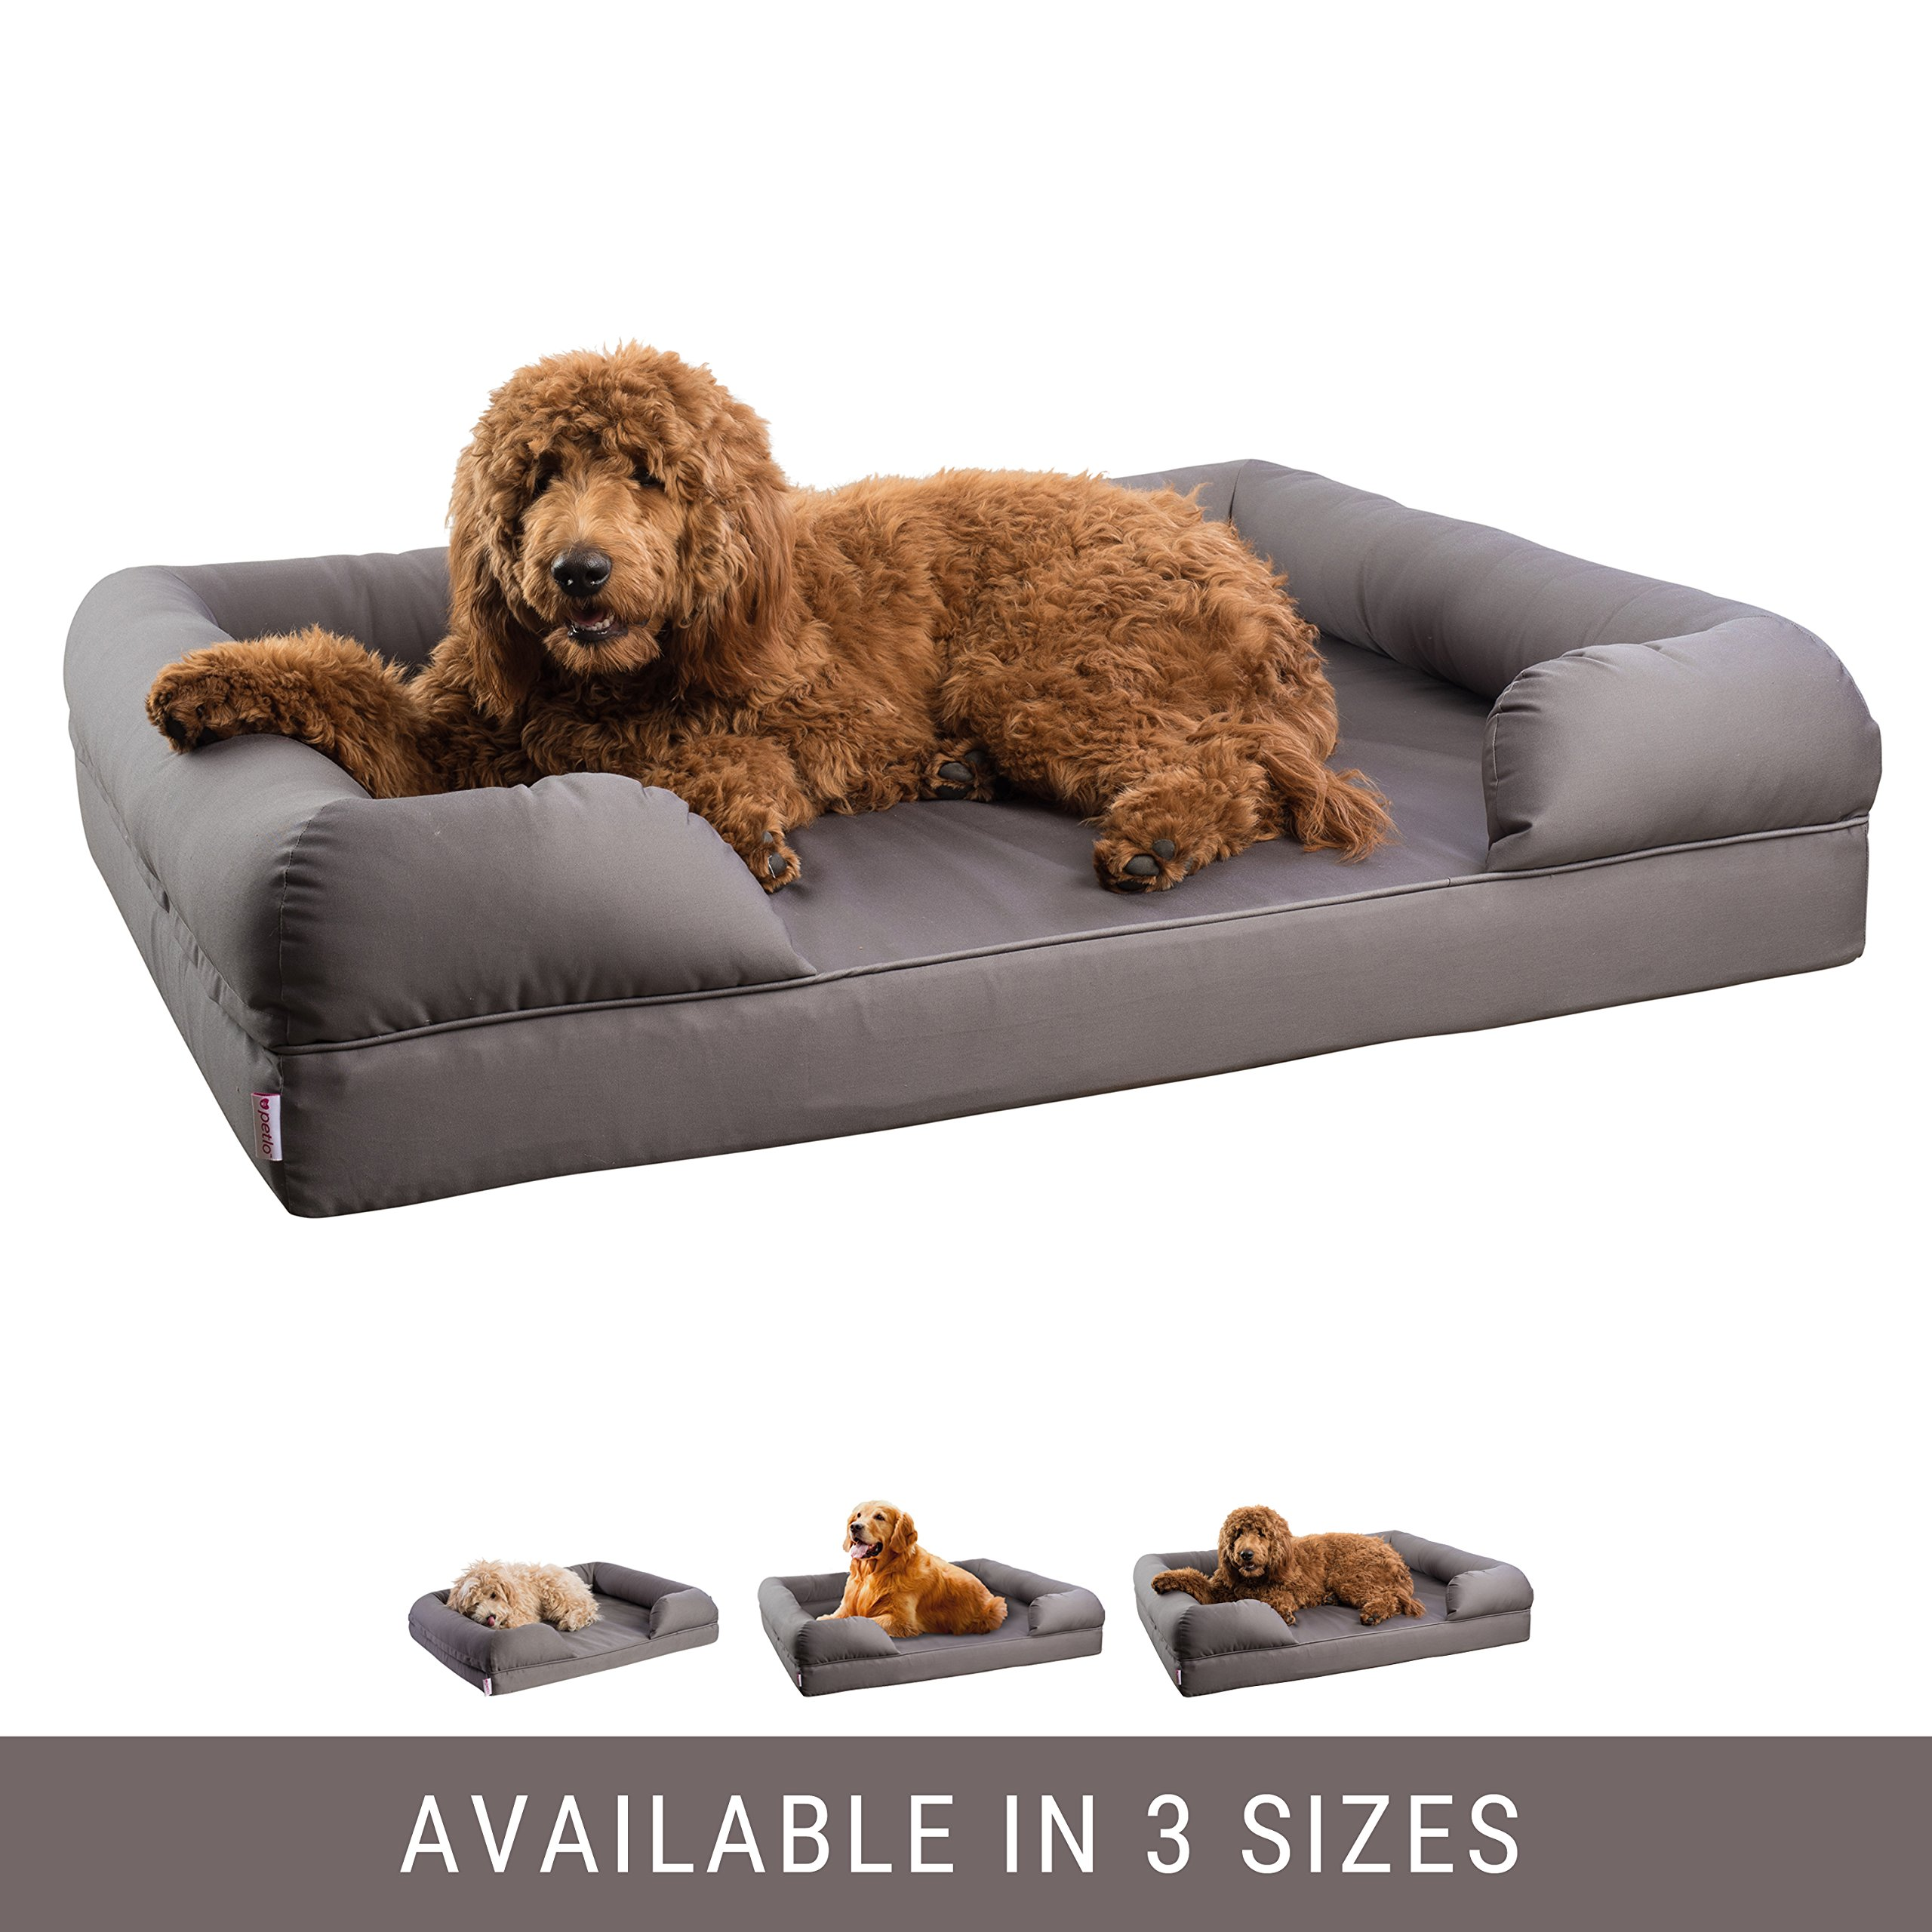 Orthopedic Pet Sofa Bed - Dog, Cat or Puppy Memory Foam Mattress - Grey Comfortable Couch For Pets With Removable Washable Cover - Extra Large - By Petlo